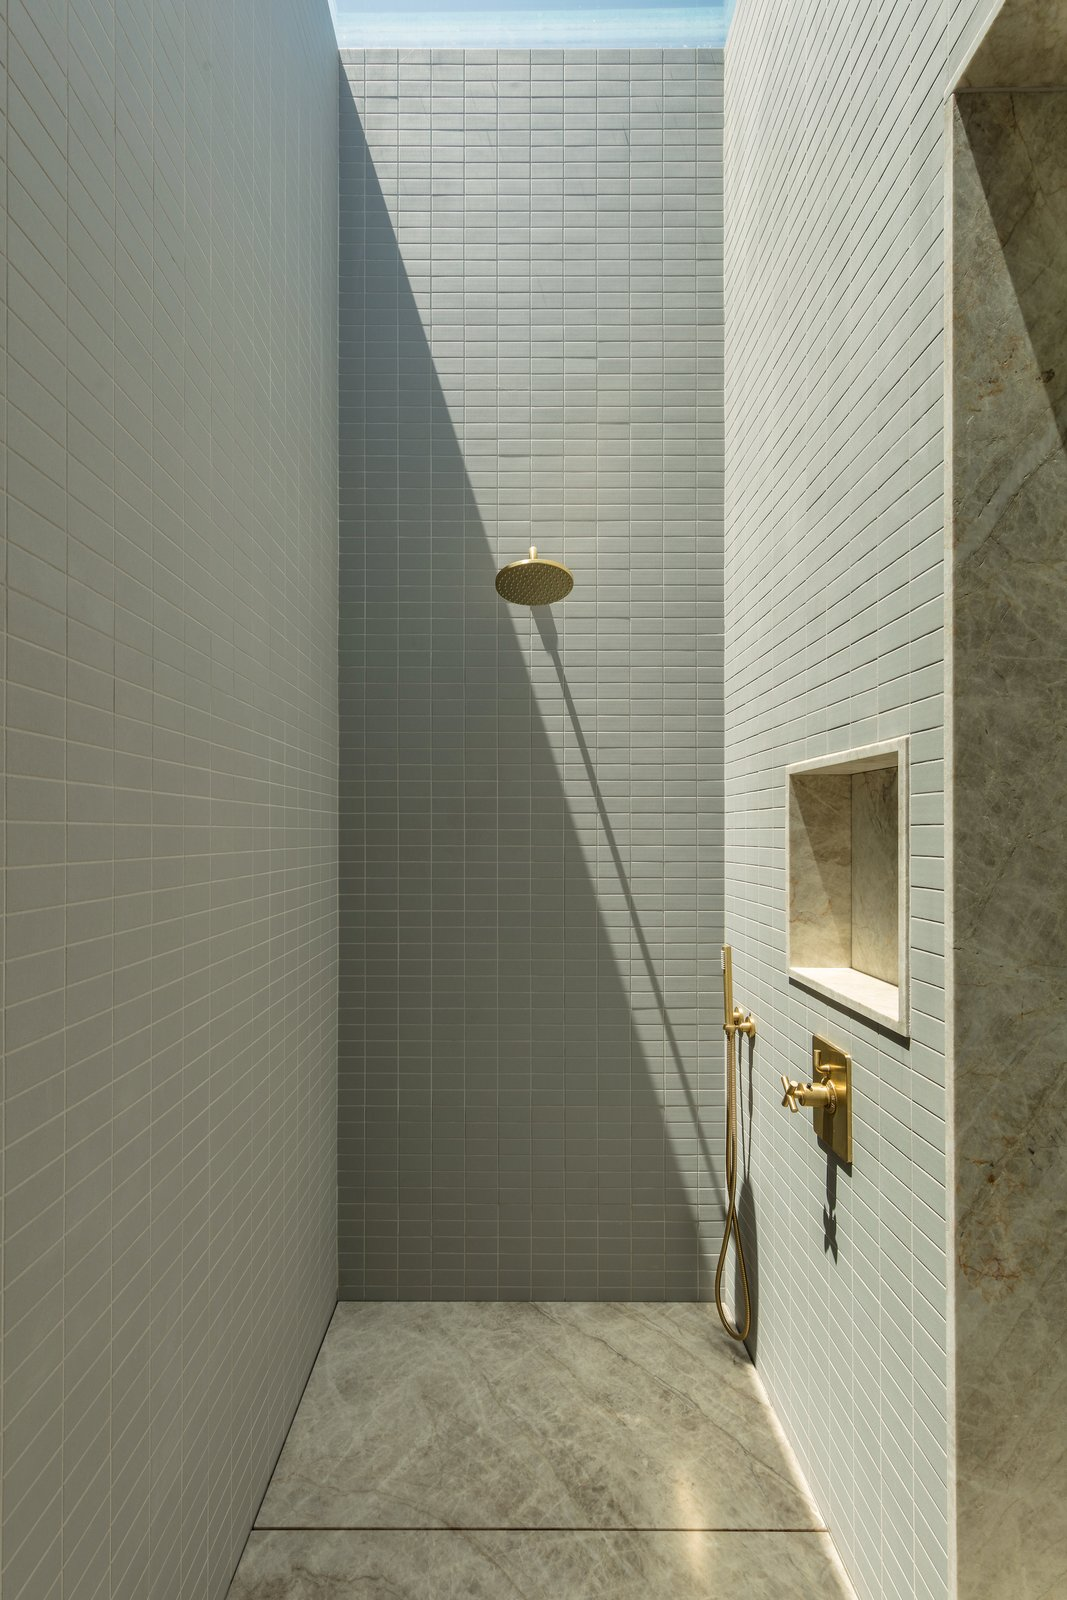 Master shower at Culver City Case Study House by Woods + Dangaran.